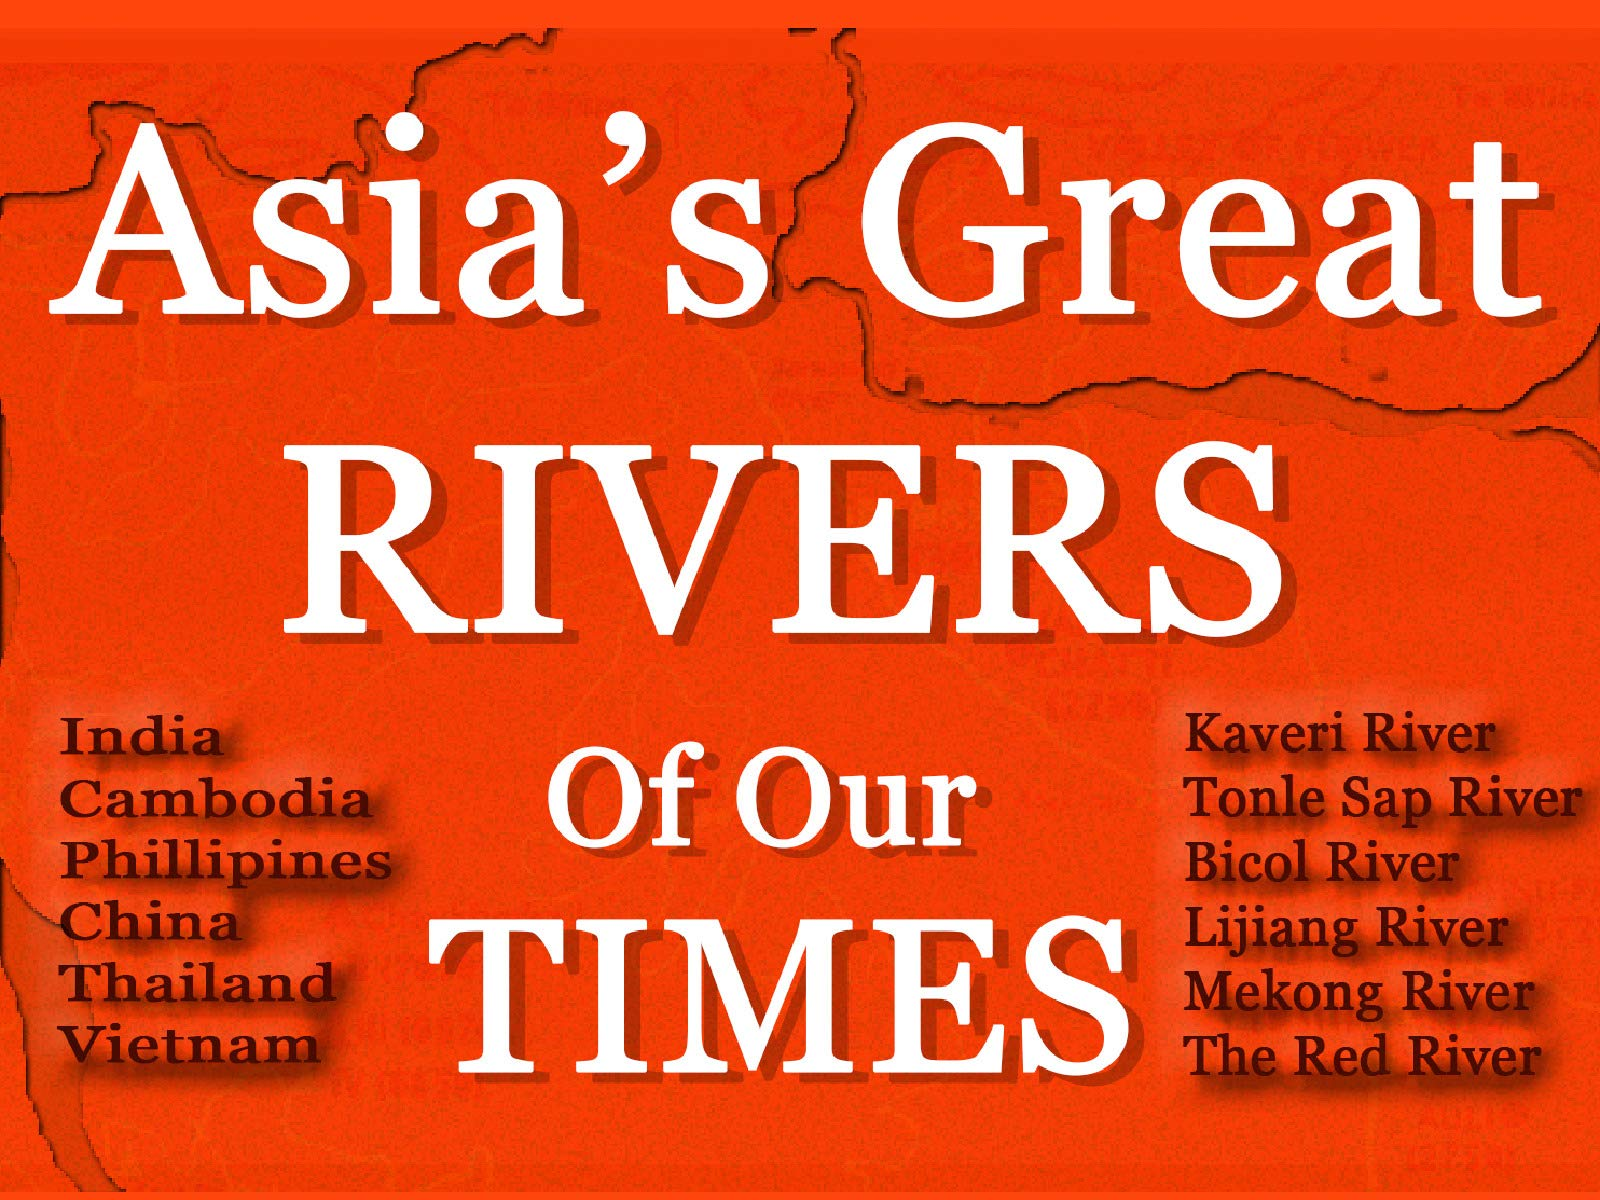 Asia's Great Rivers of Our Time - Season 1